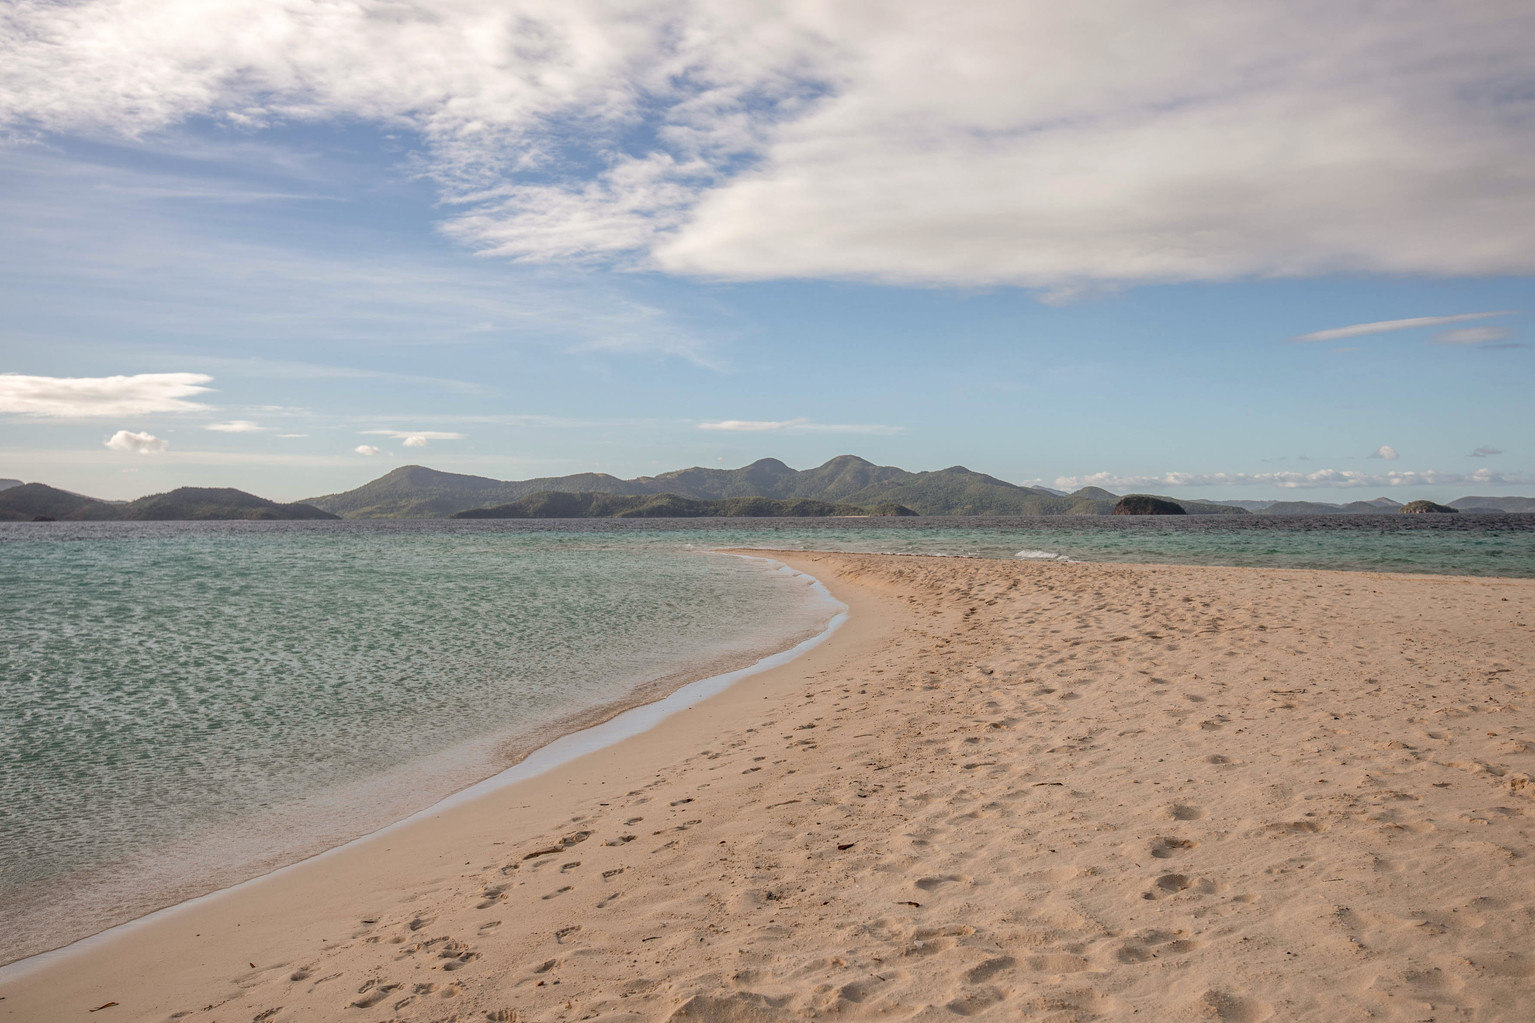 Sand beach and turquoises water in front of mountains in the philippines